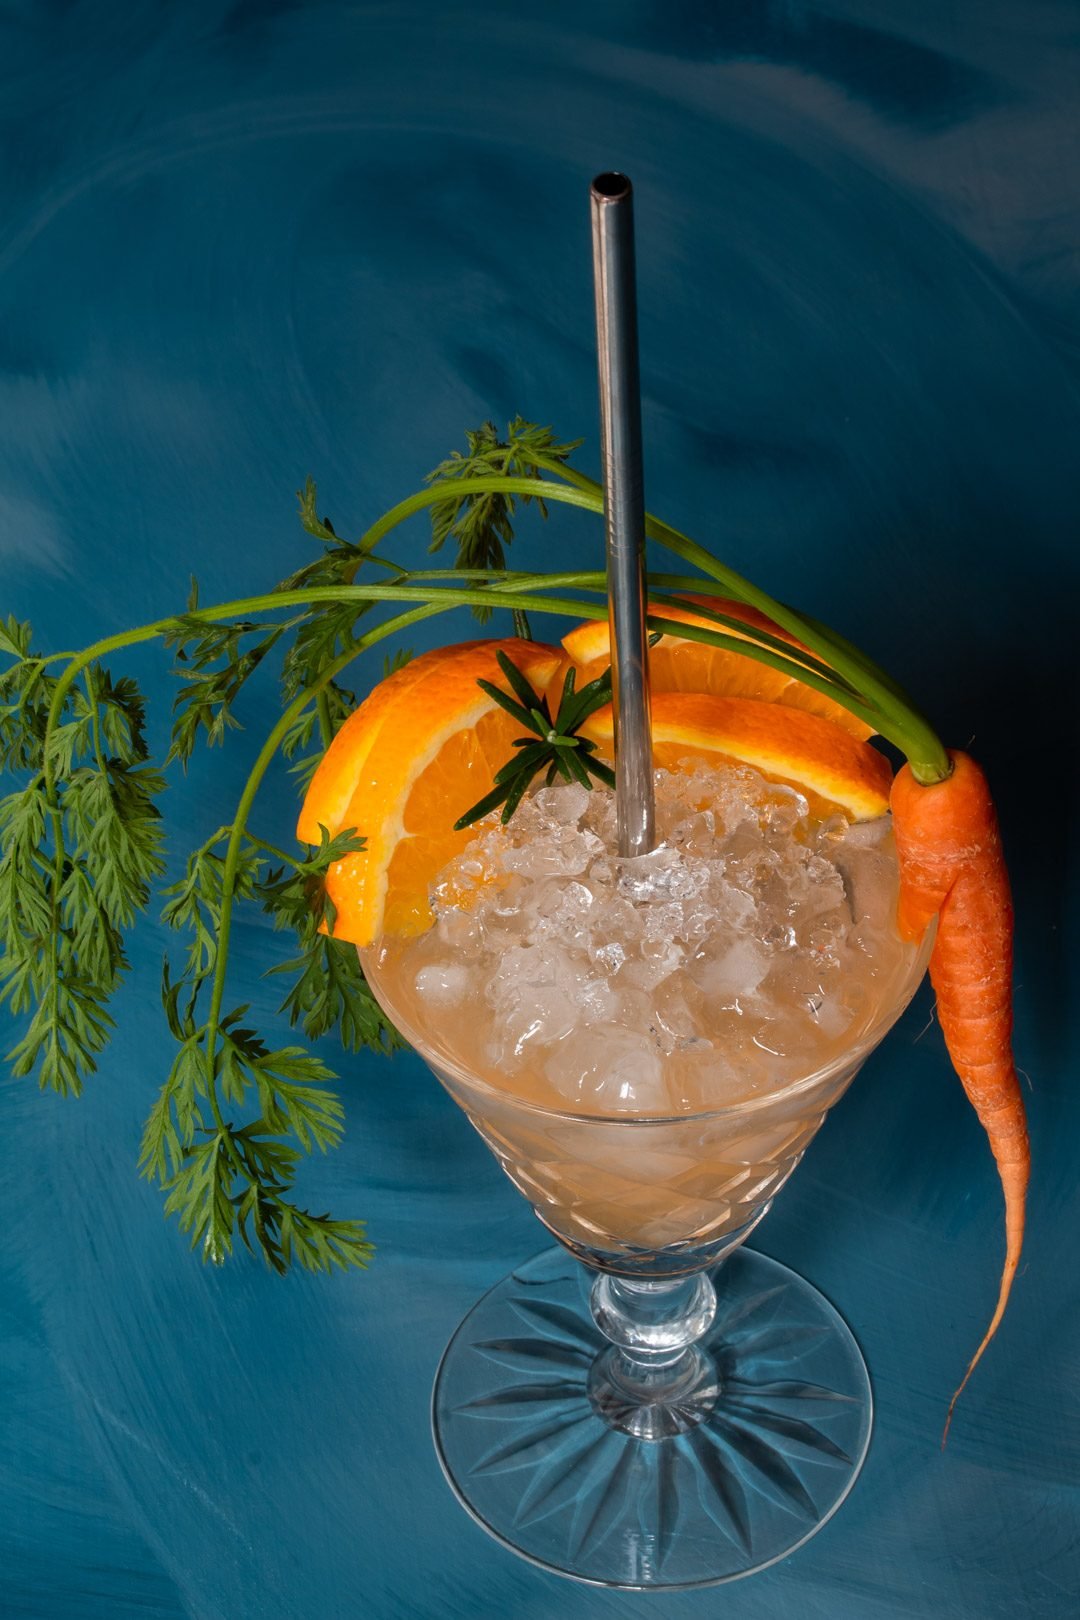 carrot shrub daisy cocktail from 45 degree angle on a blue textured background